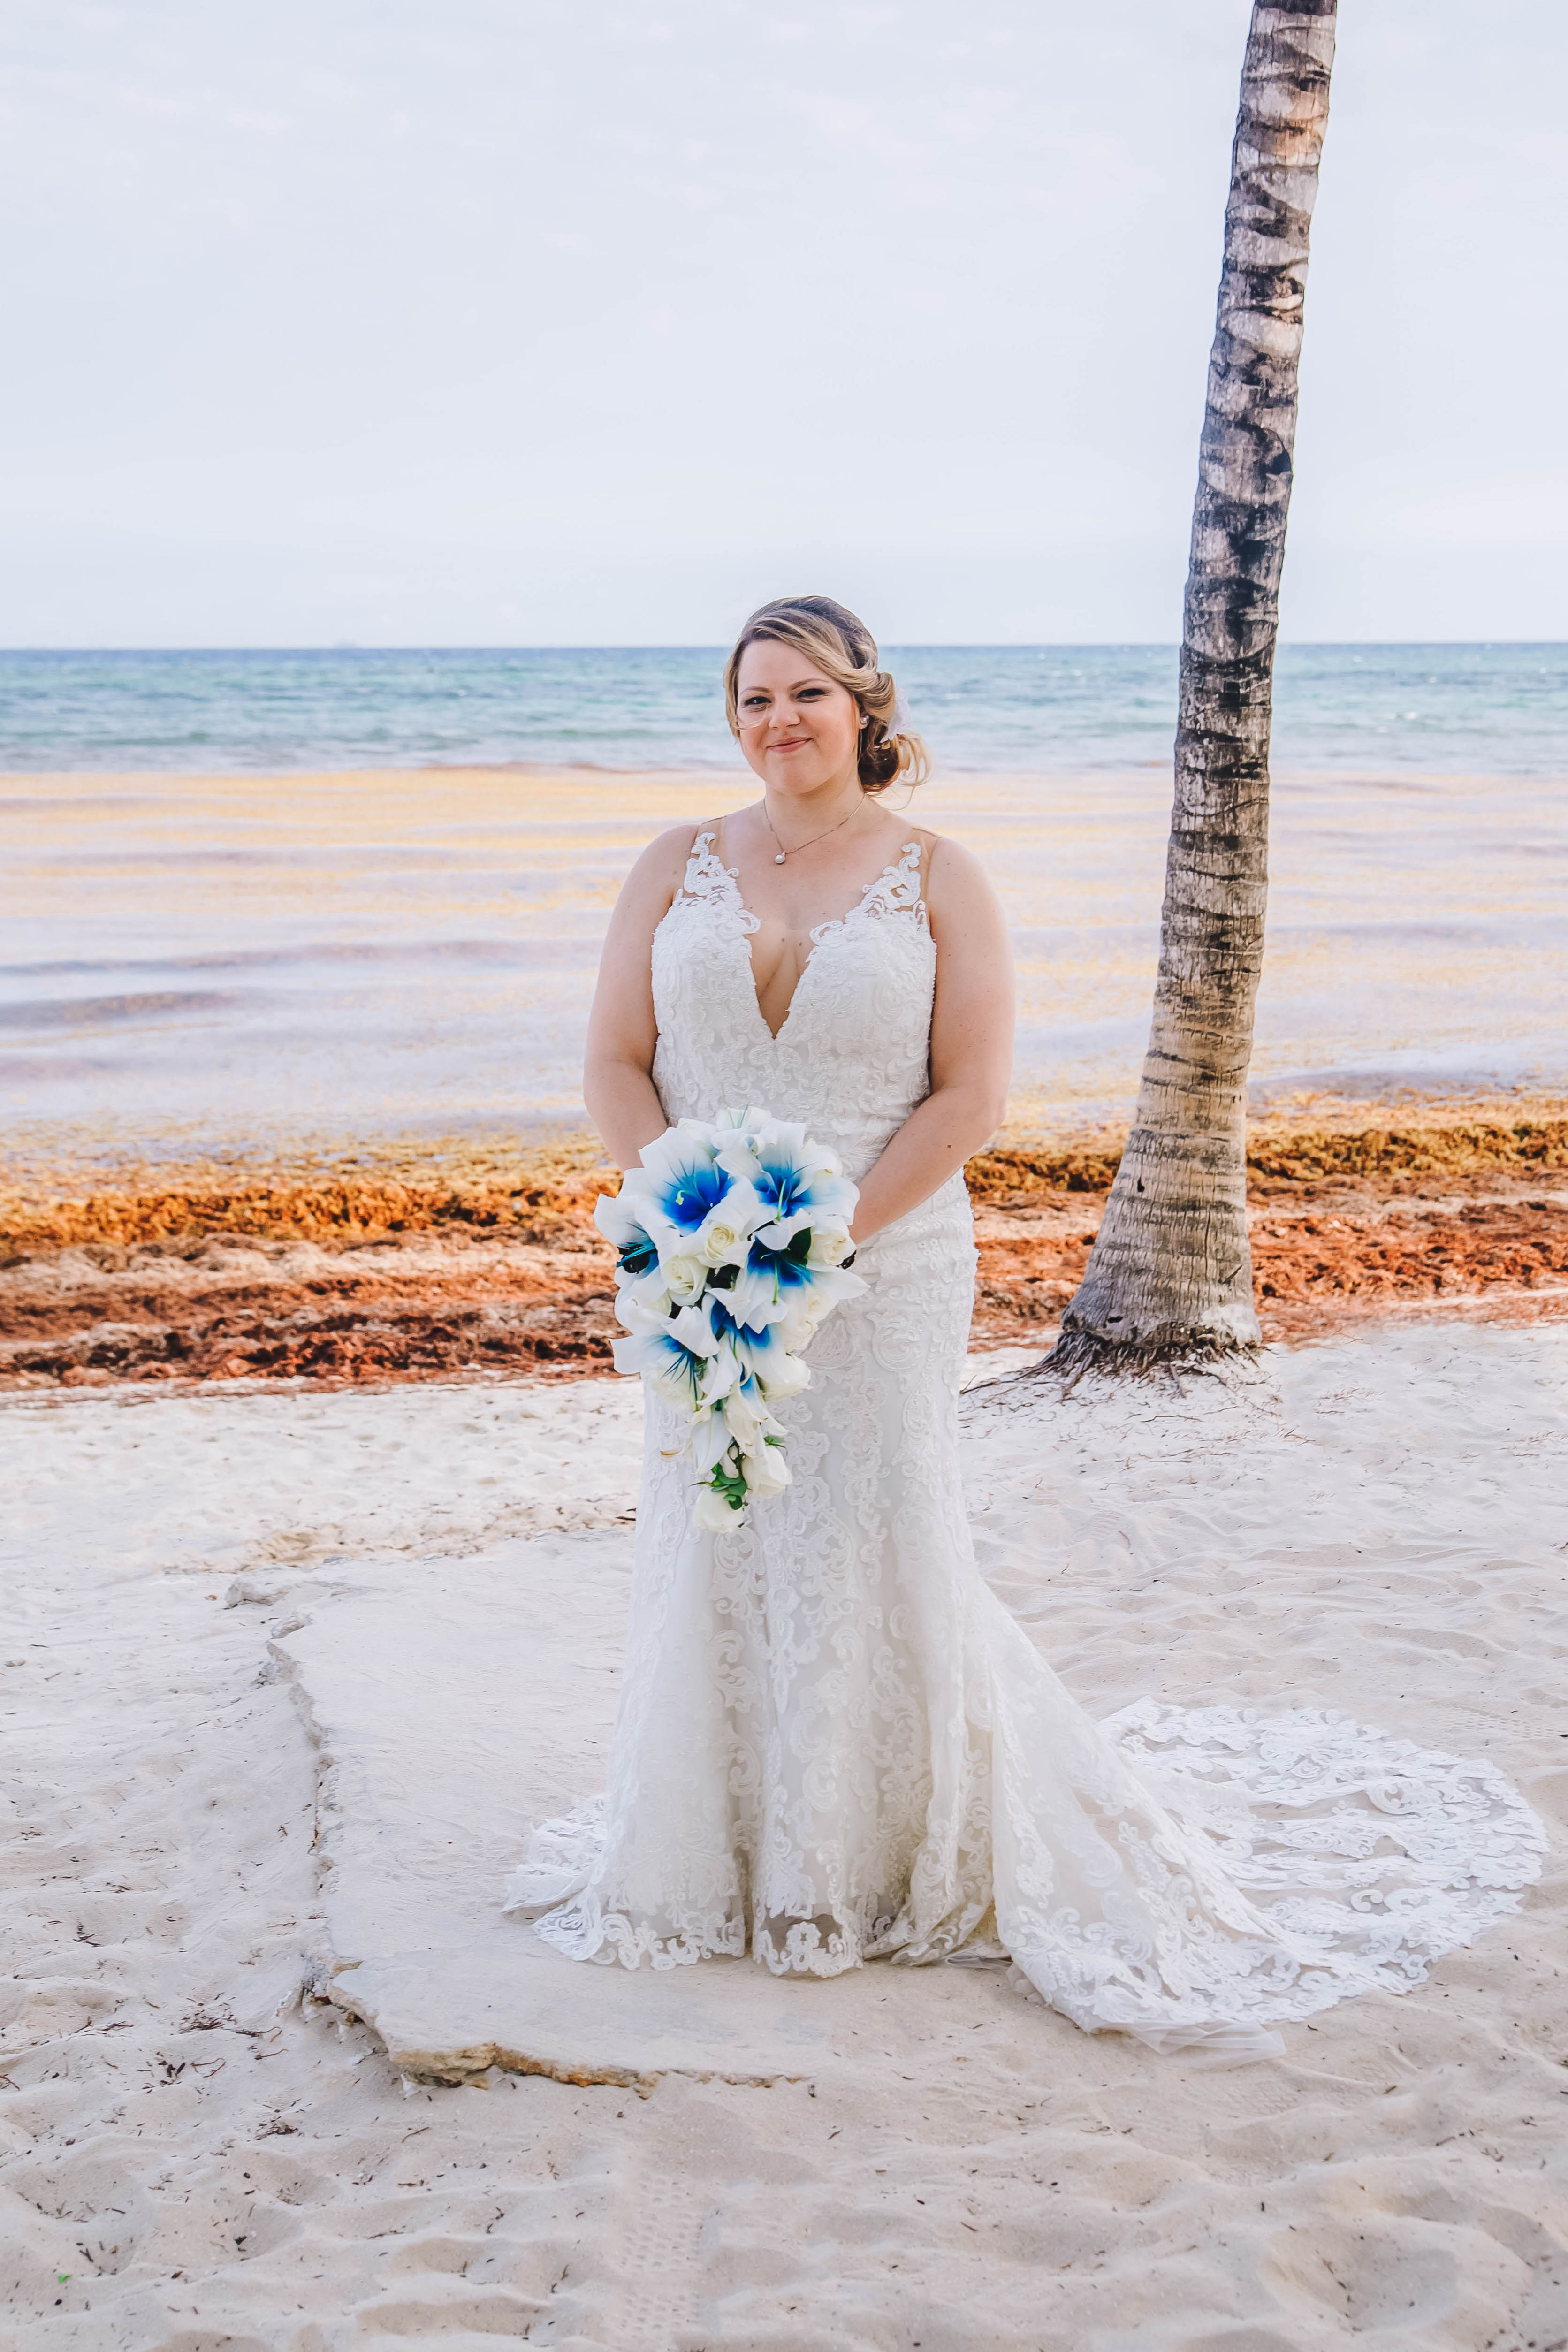 Anomalie specialized in making online wedding dresses for plus sized brides, including dresses with plunging necklines, and allover lace.